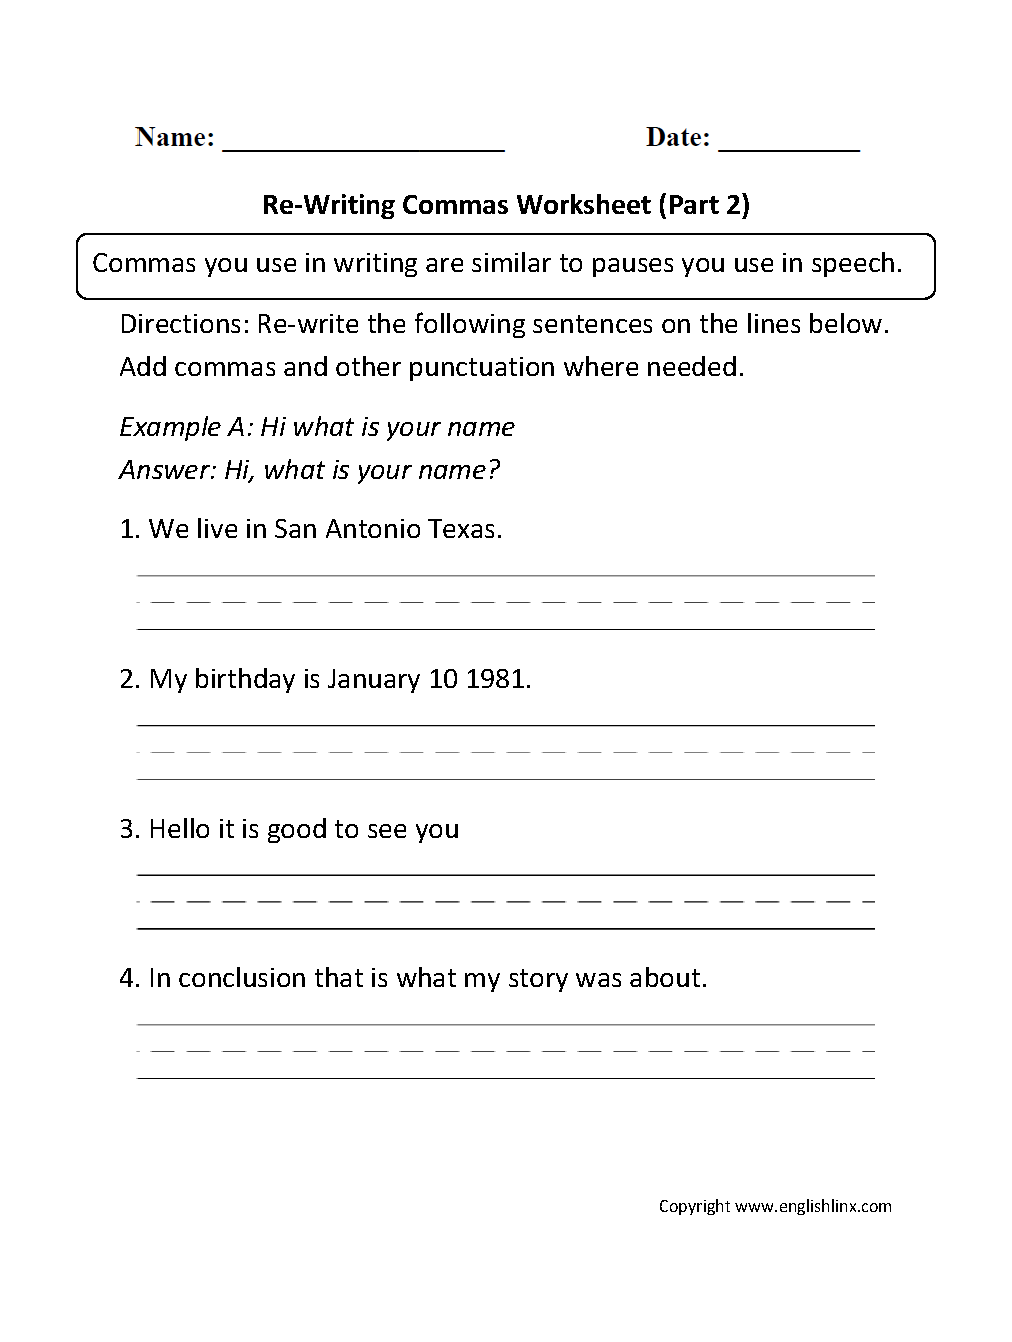 Comma practice worksheet answers